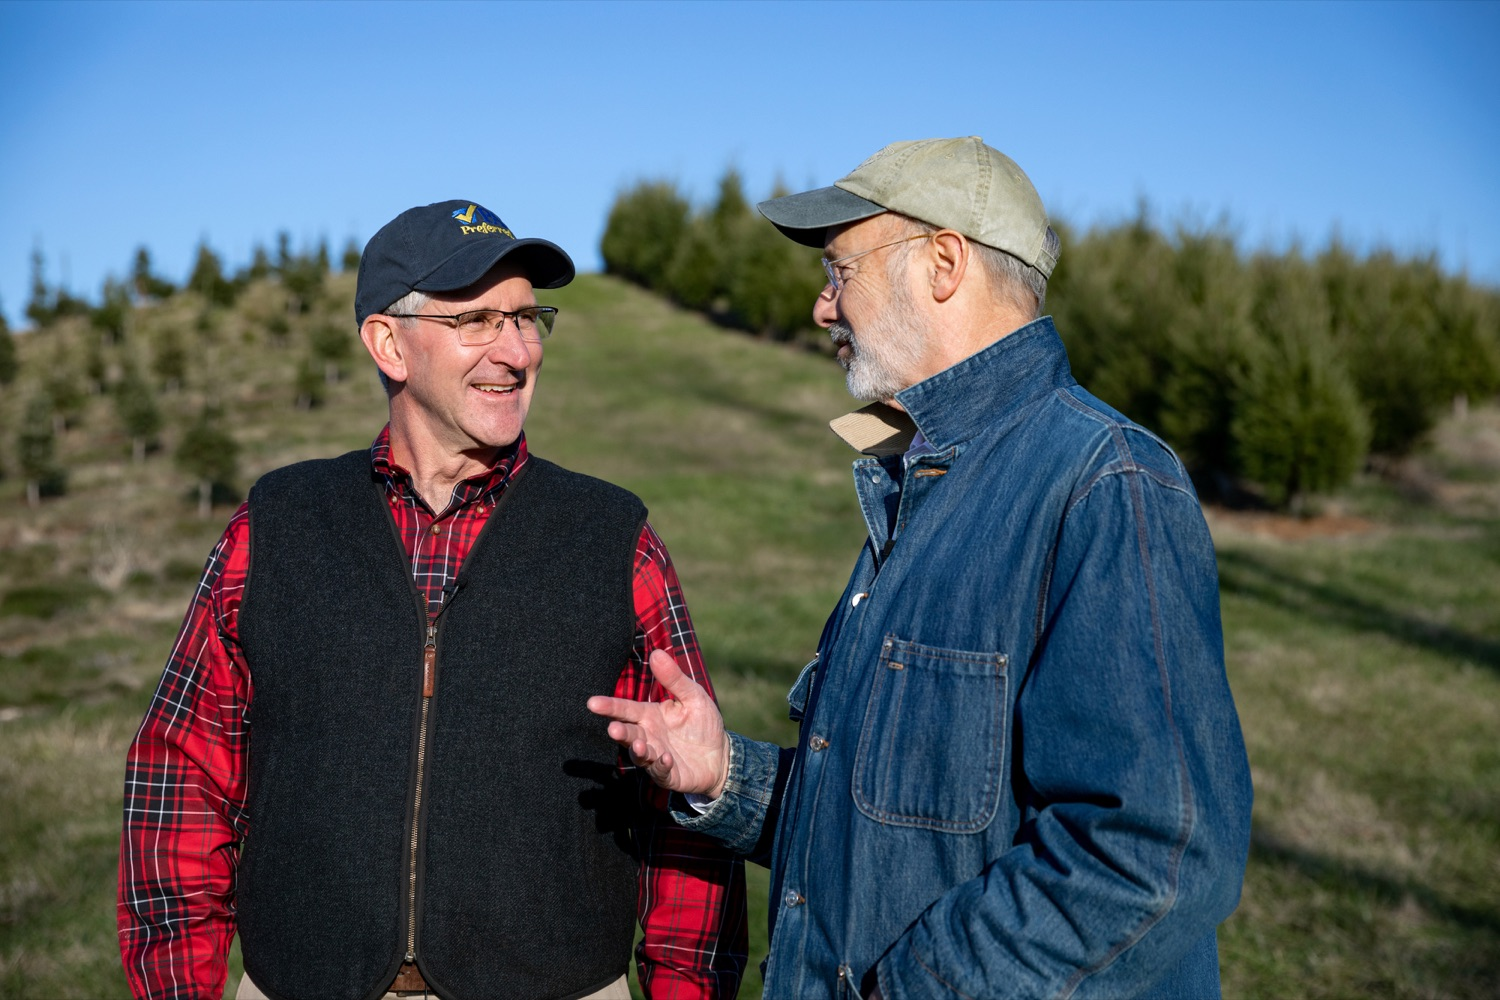 "<a href=""http://filesource.abacast.com/commonwealthofpa/photo/17615_GOV_AGRIC_Christmas_Trees_NK_004.JPG"" target=""_blank"">⇣ Download Photo<br></a>Pennsylvania Governor Tom Wolf, right, Pennsylvania Agriculture Secretary Russell Redding talk together on Monday, November 25, 2019."